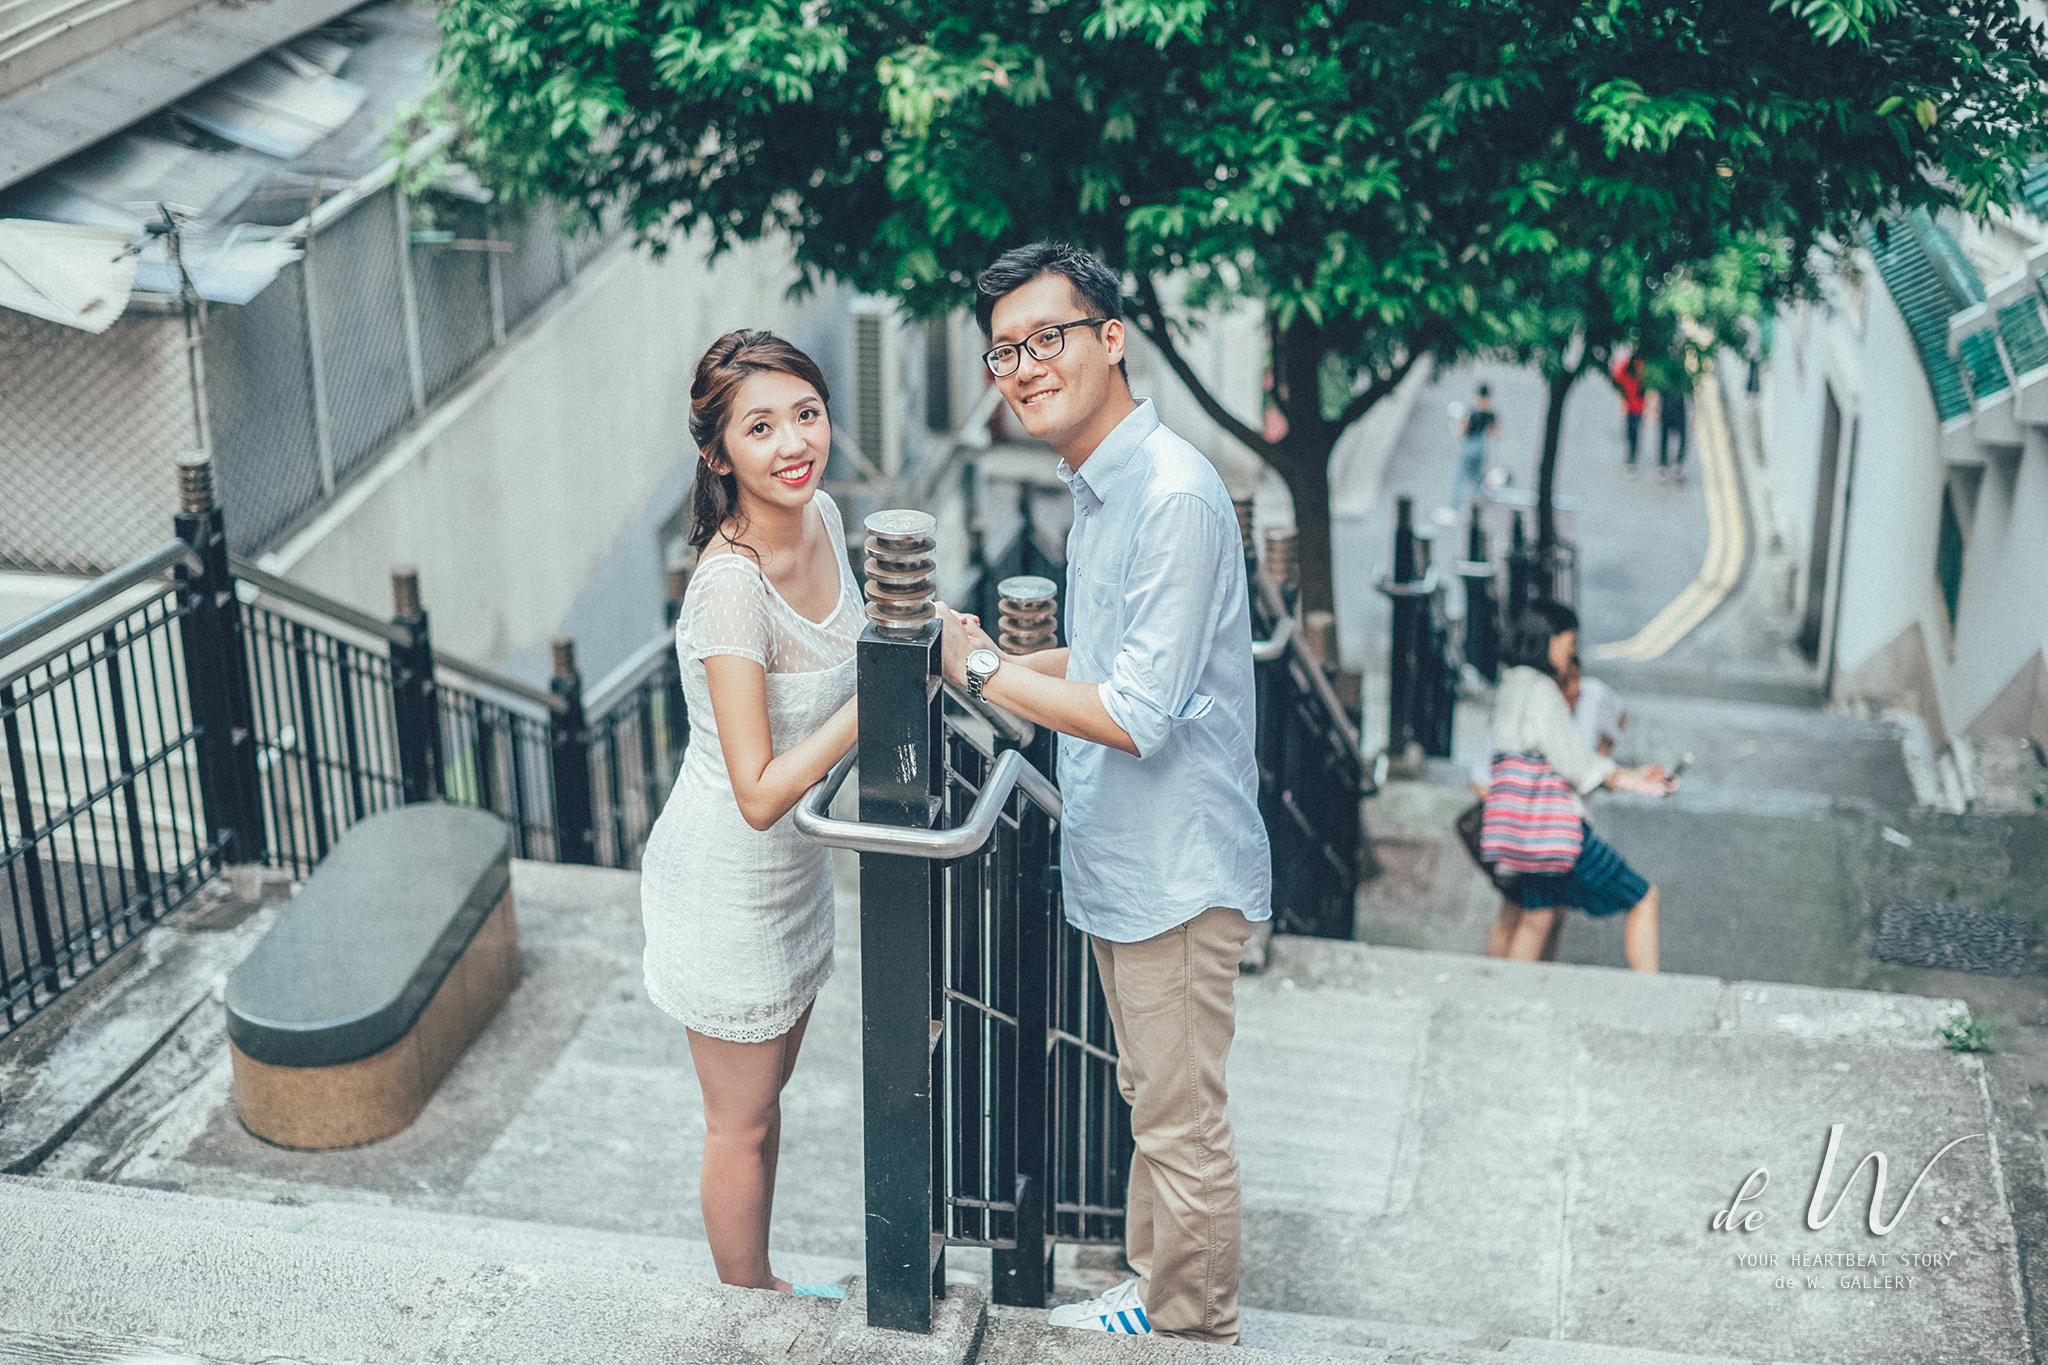 2048 de w gallery Film style hong kong 底片 拍拖 engagement vsco 故事 中環 西環 central-12